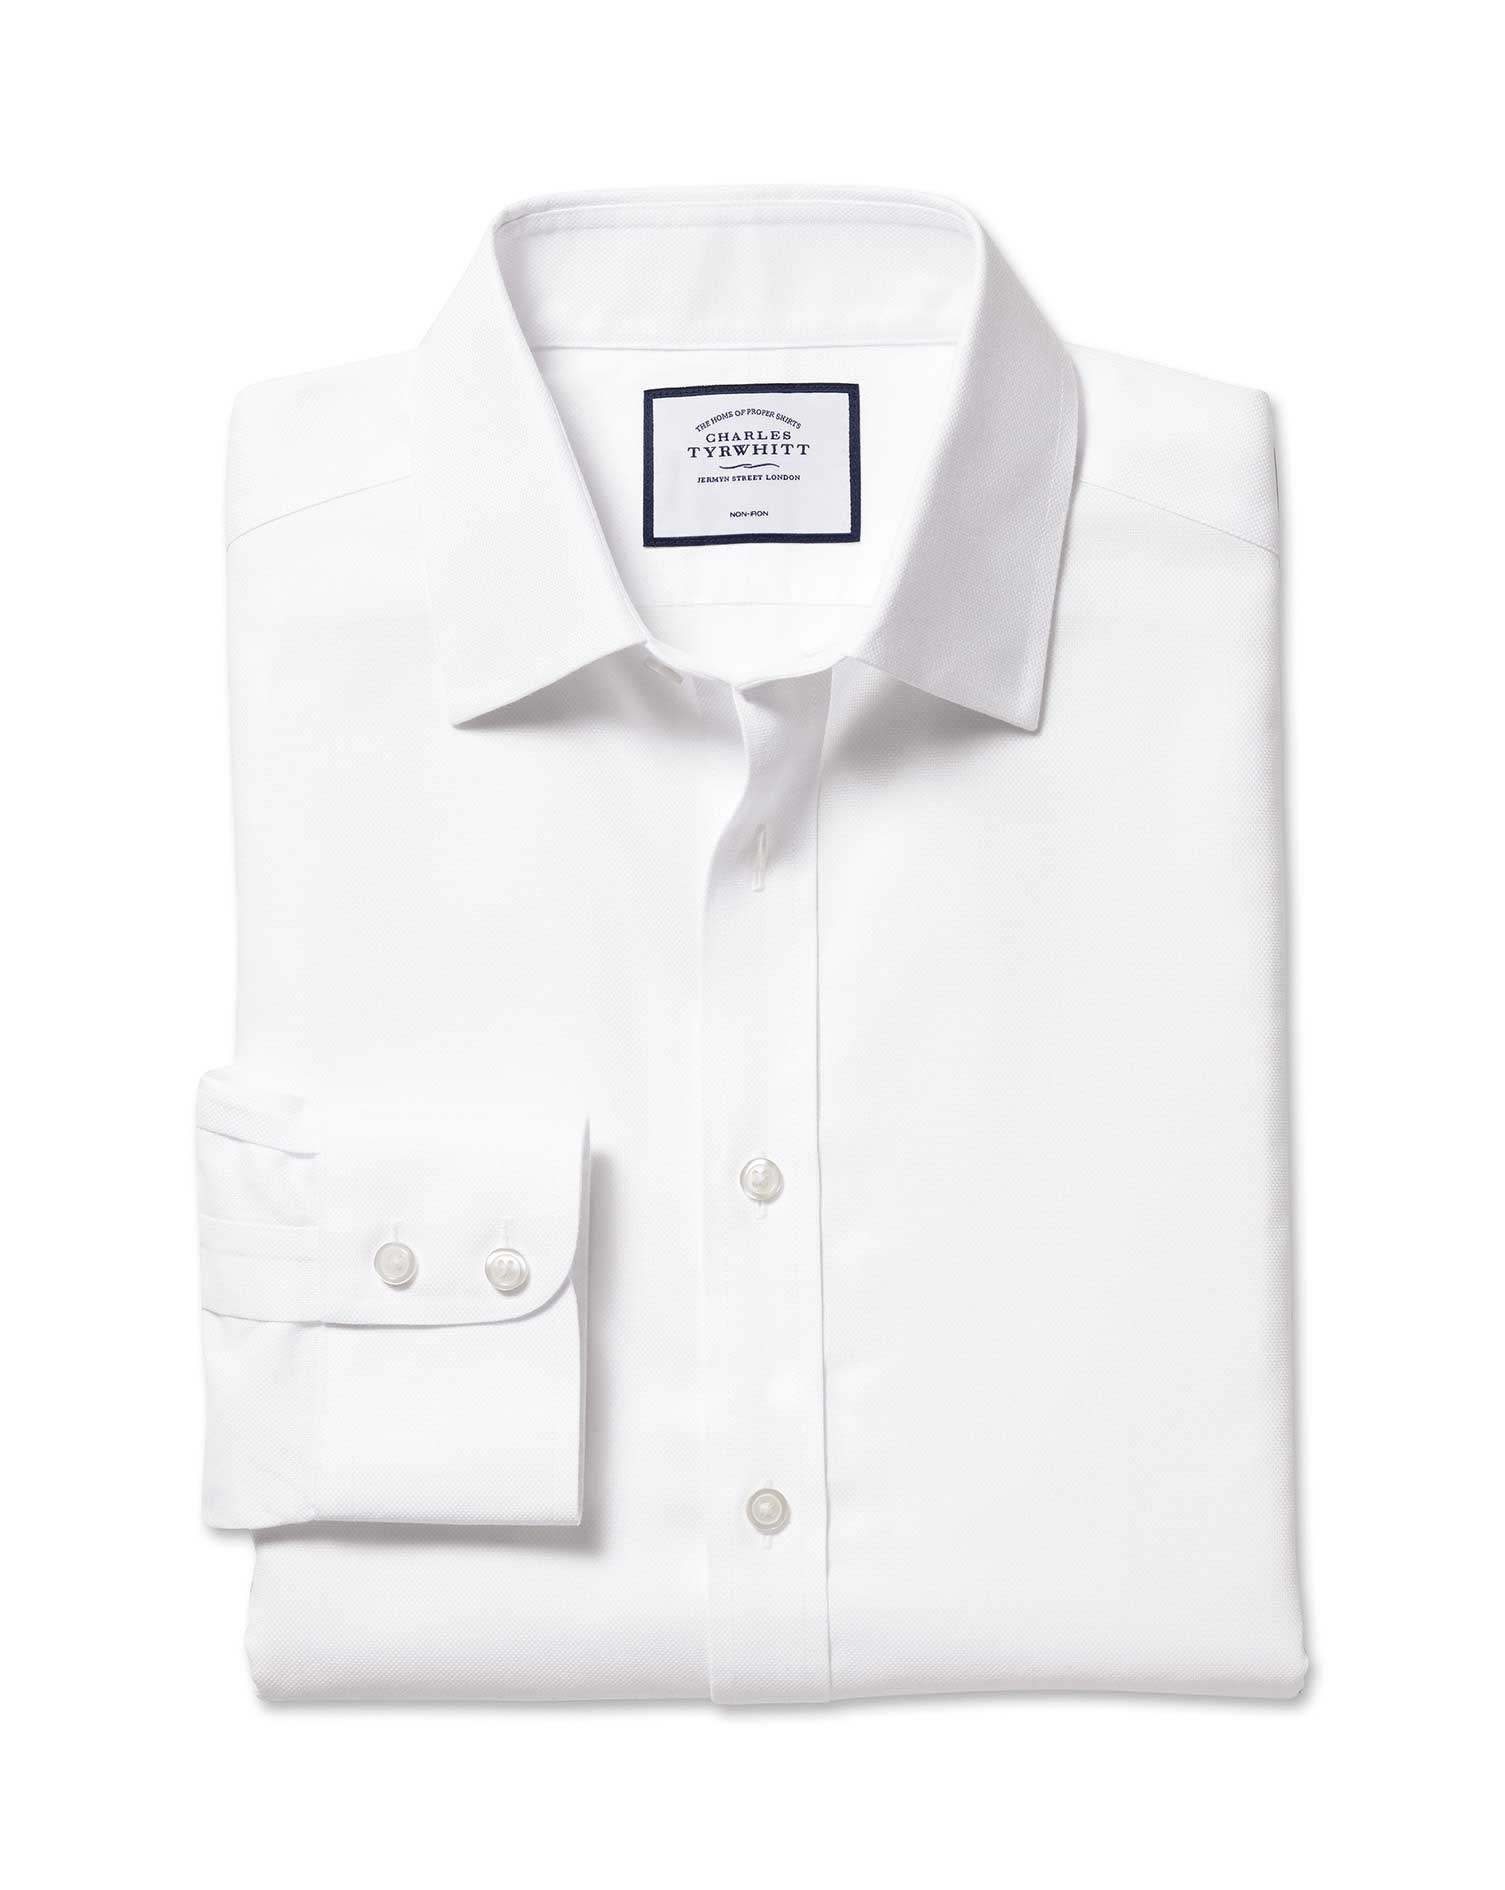 Classic Fit Non-Iron Royal Panama White Cotton Formal Shirt Double Cuff Size 18/36 by Charles Tyrwhi